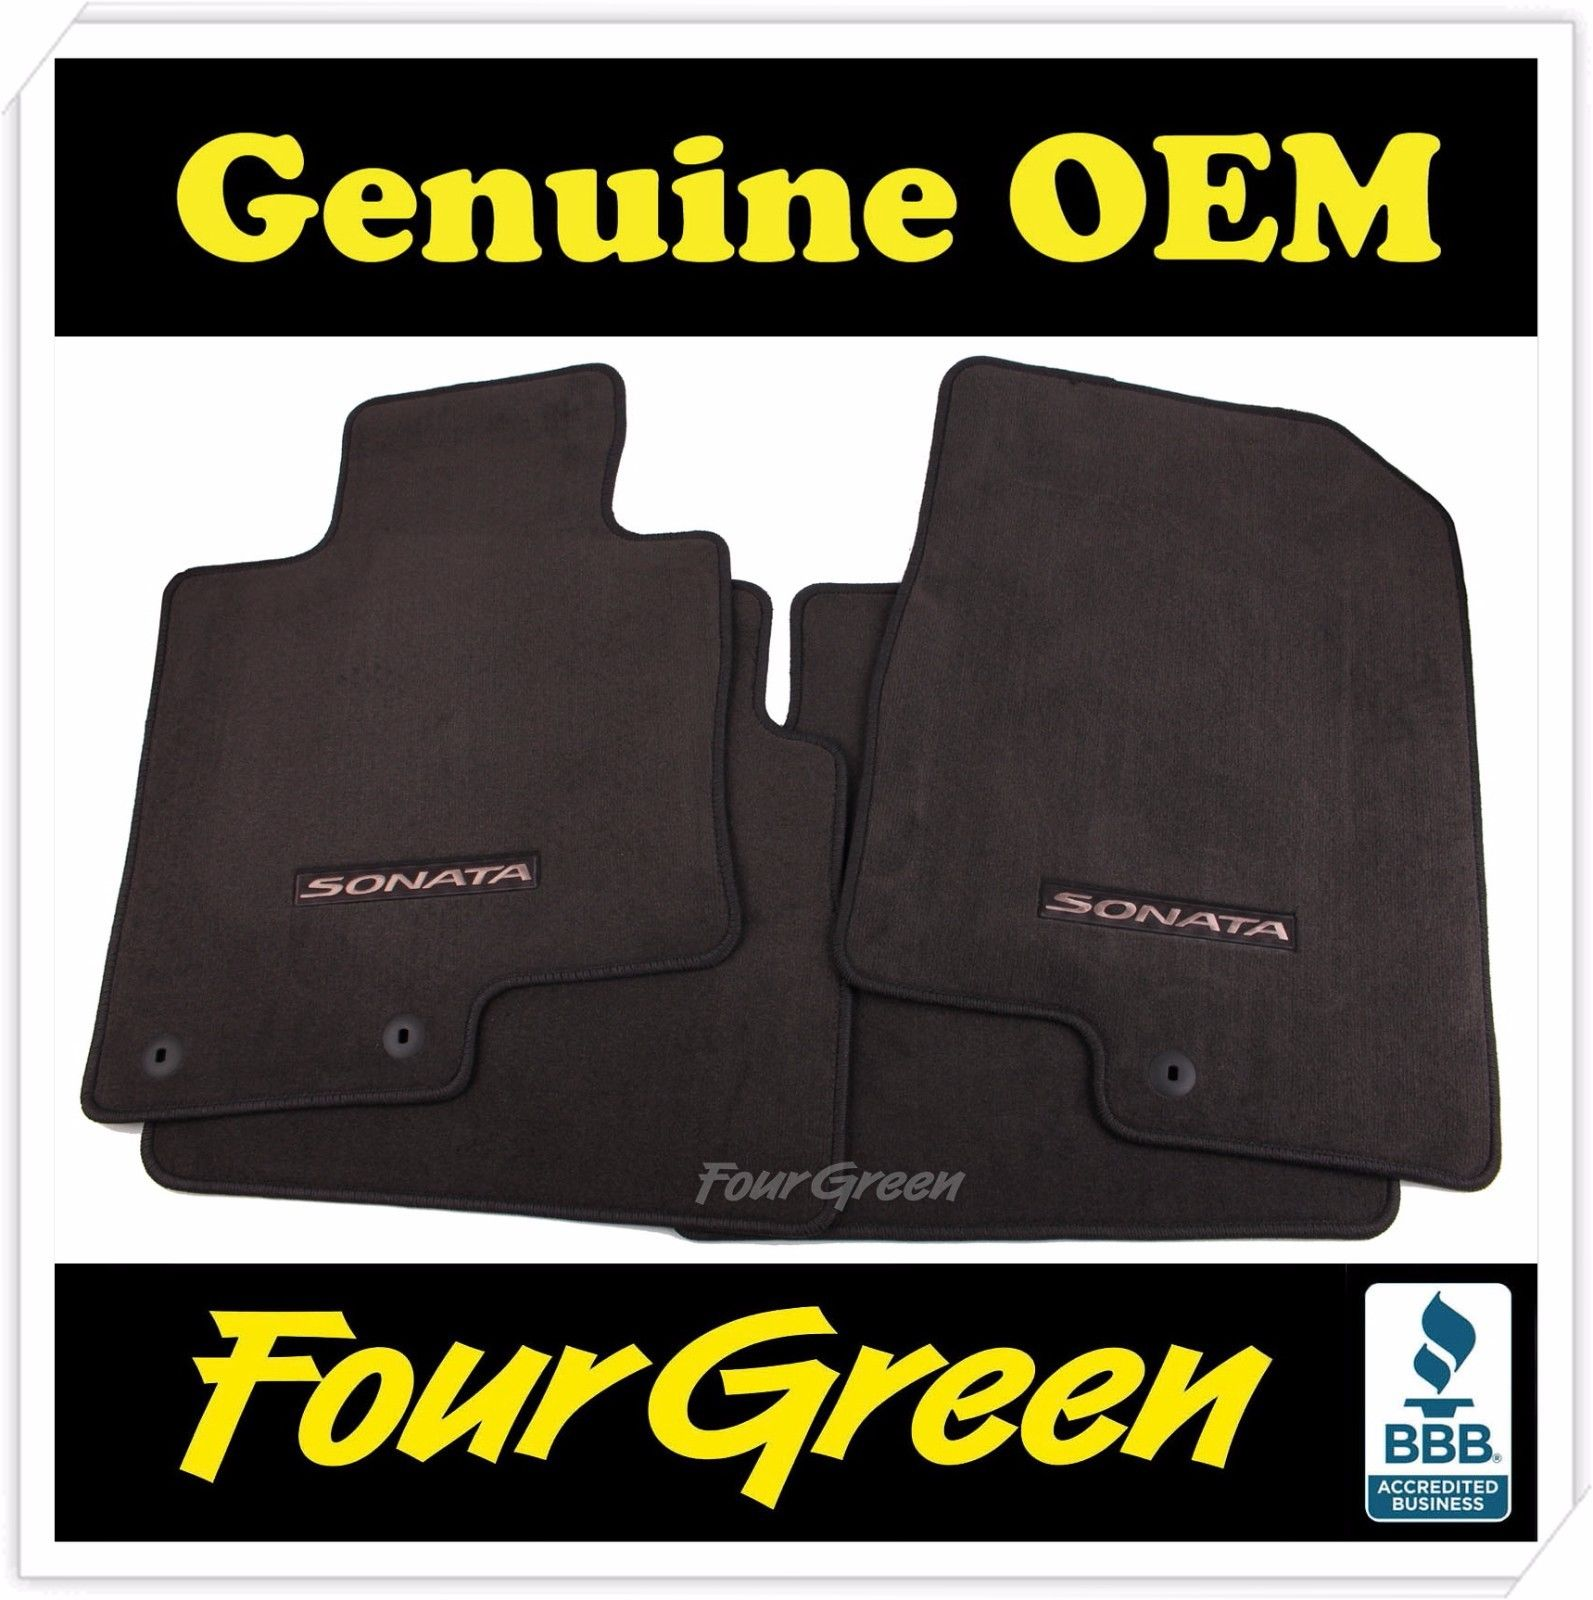 Genuine Hyundai sonata 2011-2012-2013-2014 Floor mats SET 4 PCS [3QF14-AC200-RY]